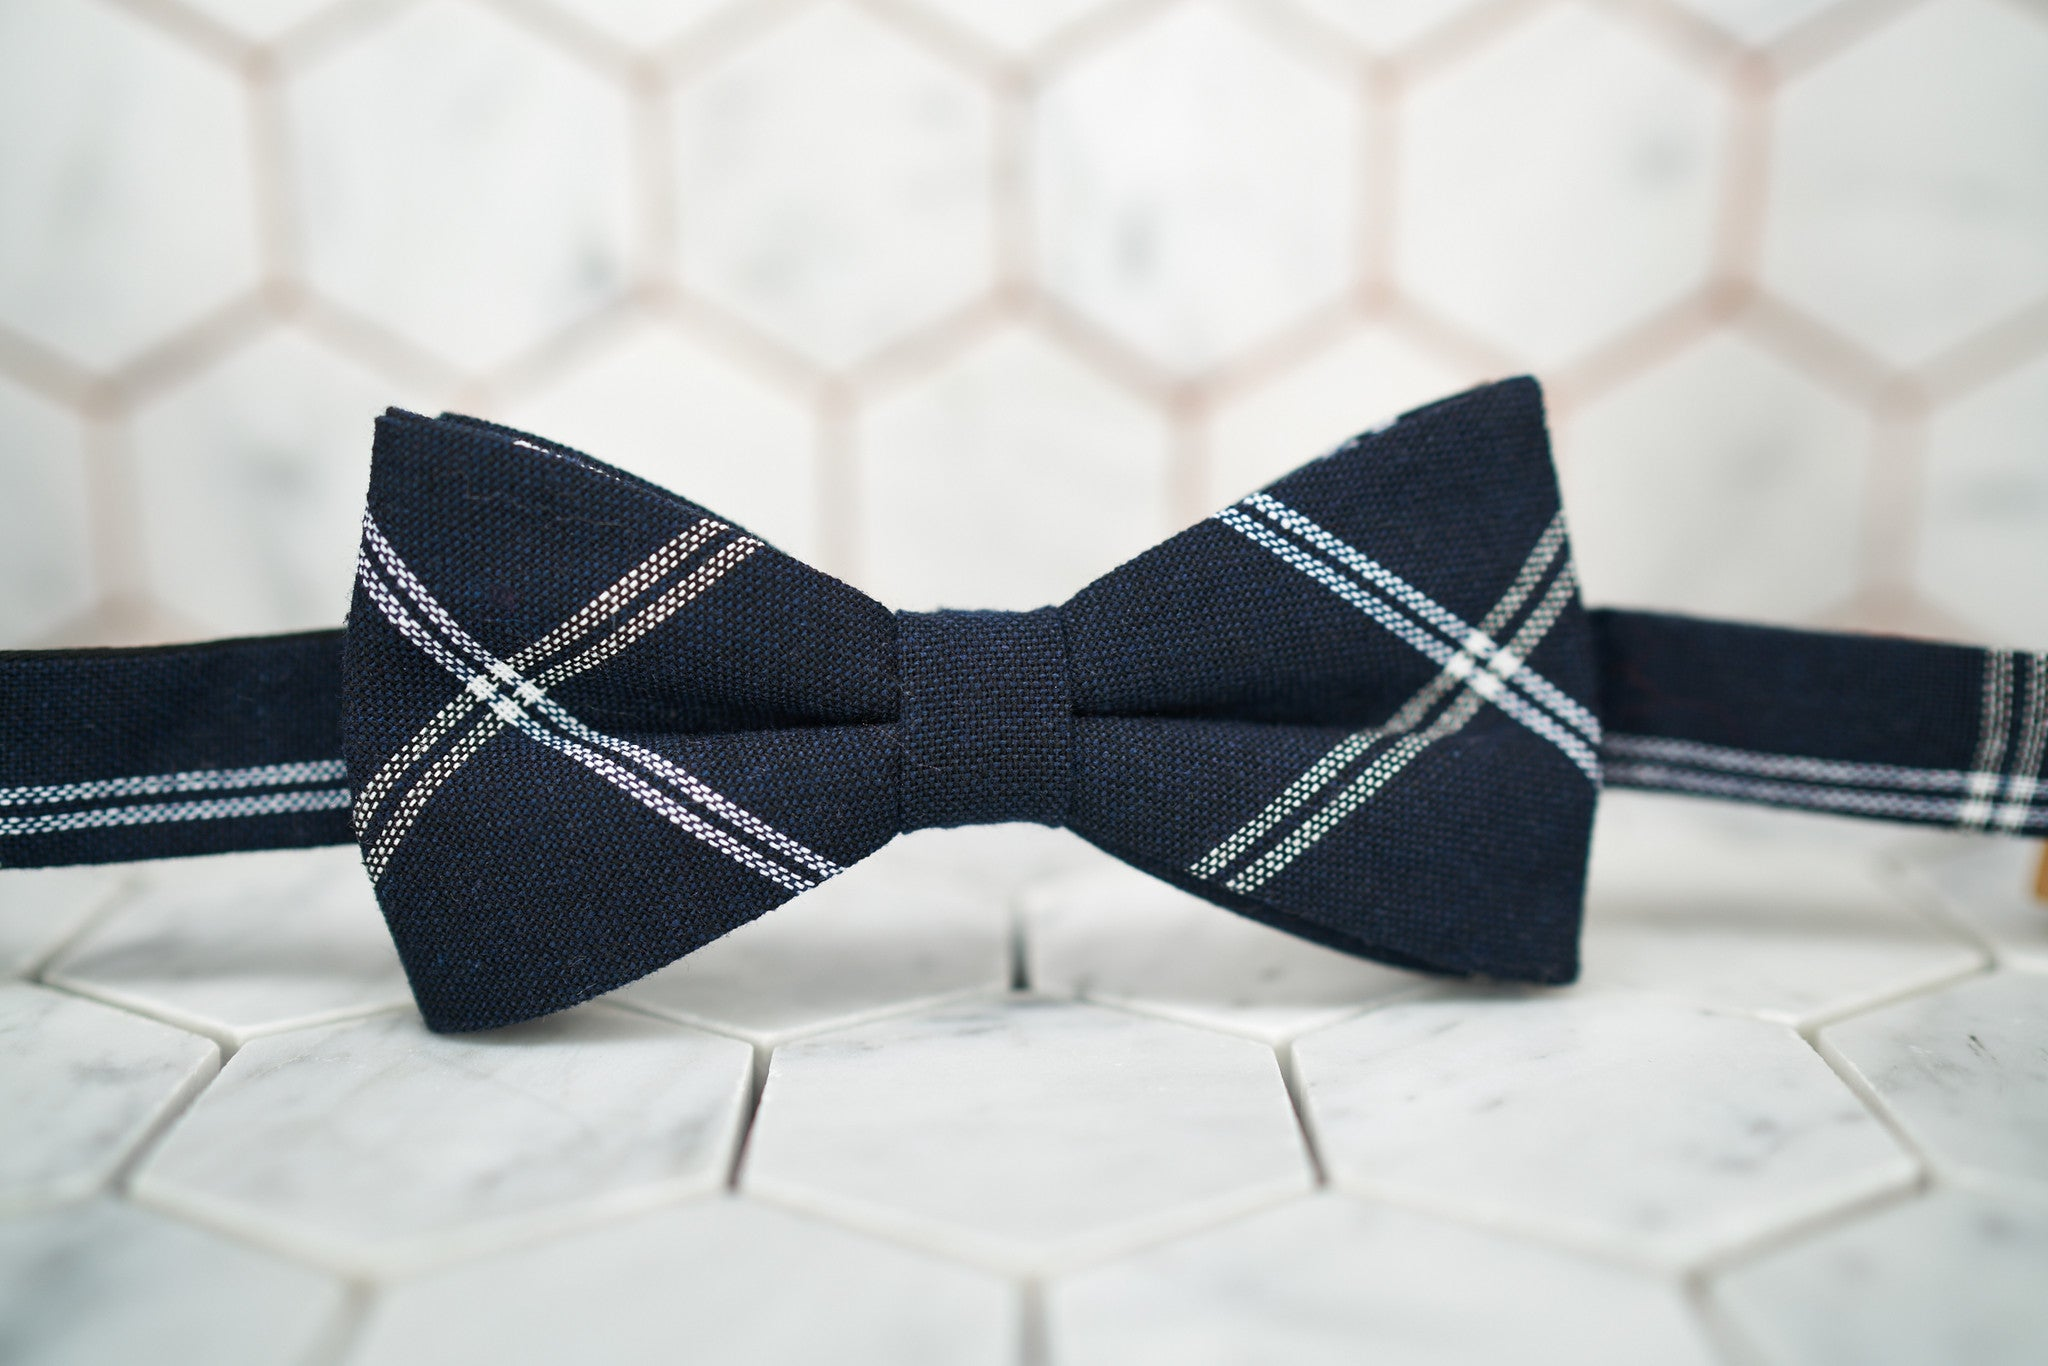 A front image of a minimalist navy bow tie featuring white stripes and a navy background.